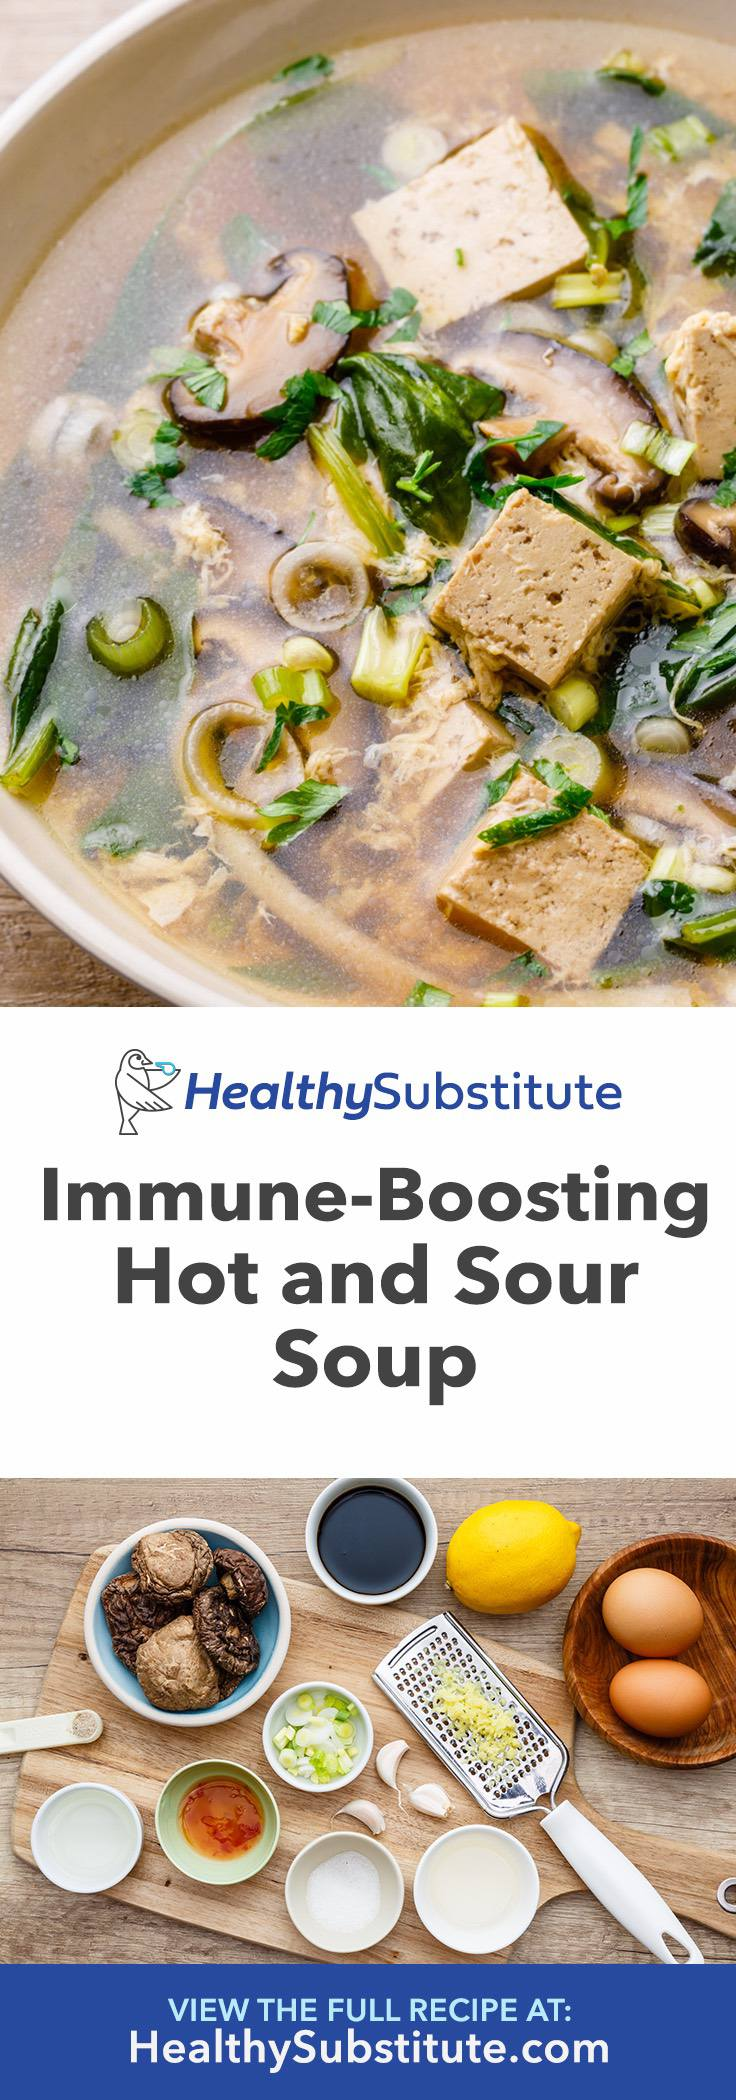 How to Make Immune-Boosting Instant Pot Hot and Sour Soup